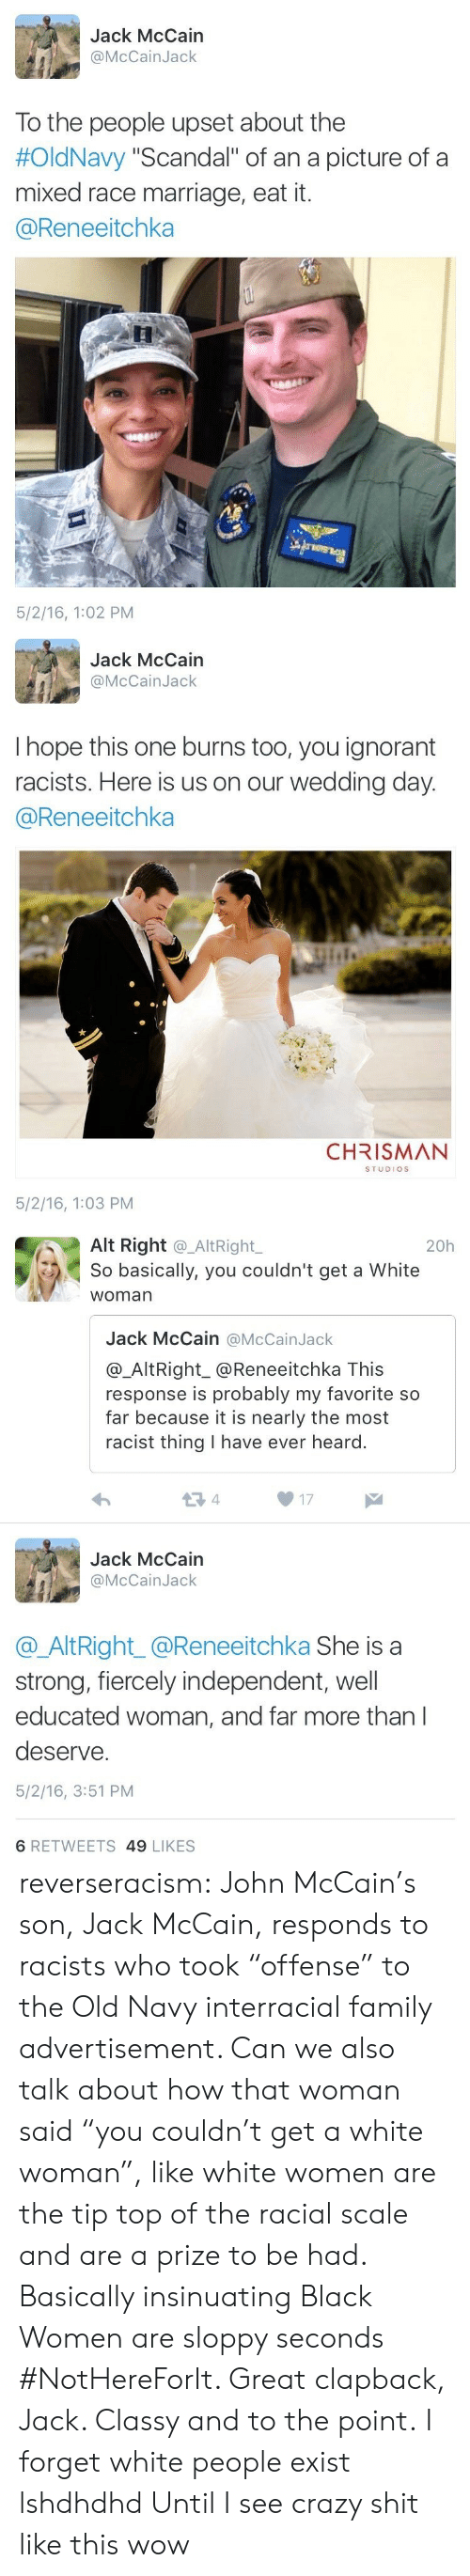 """Crazy, Family, and Ignorant: Jack McCain  @McCainJack  To the people upset about the  #OldNavy """"Scandal"""" of an a picture of a  mixed race marriage, eat it.  @Reneeitchka  5/2/16, 1:02 PM   Jack McCain  @McCainJack  I hope this one burns too, you ignorant  racists. Here is us on our wedding day  @Reneeitchka  CHRISMAN  STUDIOS  5/2/16, 1:03 PM   Alt Right @_AltRight,  So basically, you couldn't get a White  woman  20h  Jack McCain @McCainJack  @_AltRight_@Reneeitchka This  response is probably my favorite so  far because it is nearly the most  racist thing I have ever heard.  13 4  17  Jack McCain  @McCainJack  @AltRight_@Reneeitchka She is a  strong, fiercely independent, well  educated woman, and far more than l  deserve.  5/2/16, 3:51 PM  6 RETWEETS 49 LIKES reverseracism:  John McCain's son, Jack McCain, responds to racists who took """"offense"""" to the Old Navy interracial family advertisement.   Can we also talk about how that woman said """"you couldn't get a white woman"""", like white women are the tip top of the racial scale and are a prize to be had. Basically insinuating Black Women are sloppy seconds #NotHereForIt. Great clapback, Jack. Classy and to the point.   I forget white people exist lshdhdhd Until I see crazy shit like this wow"""